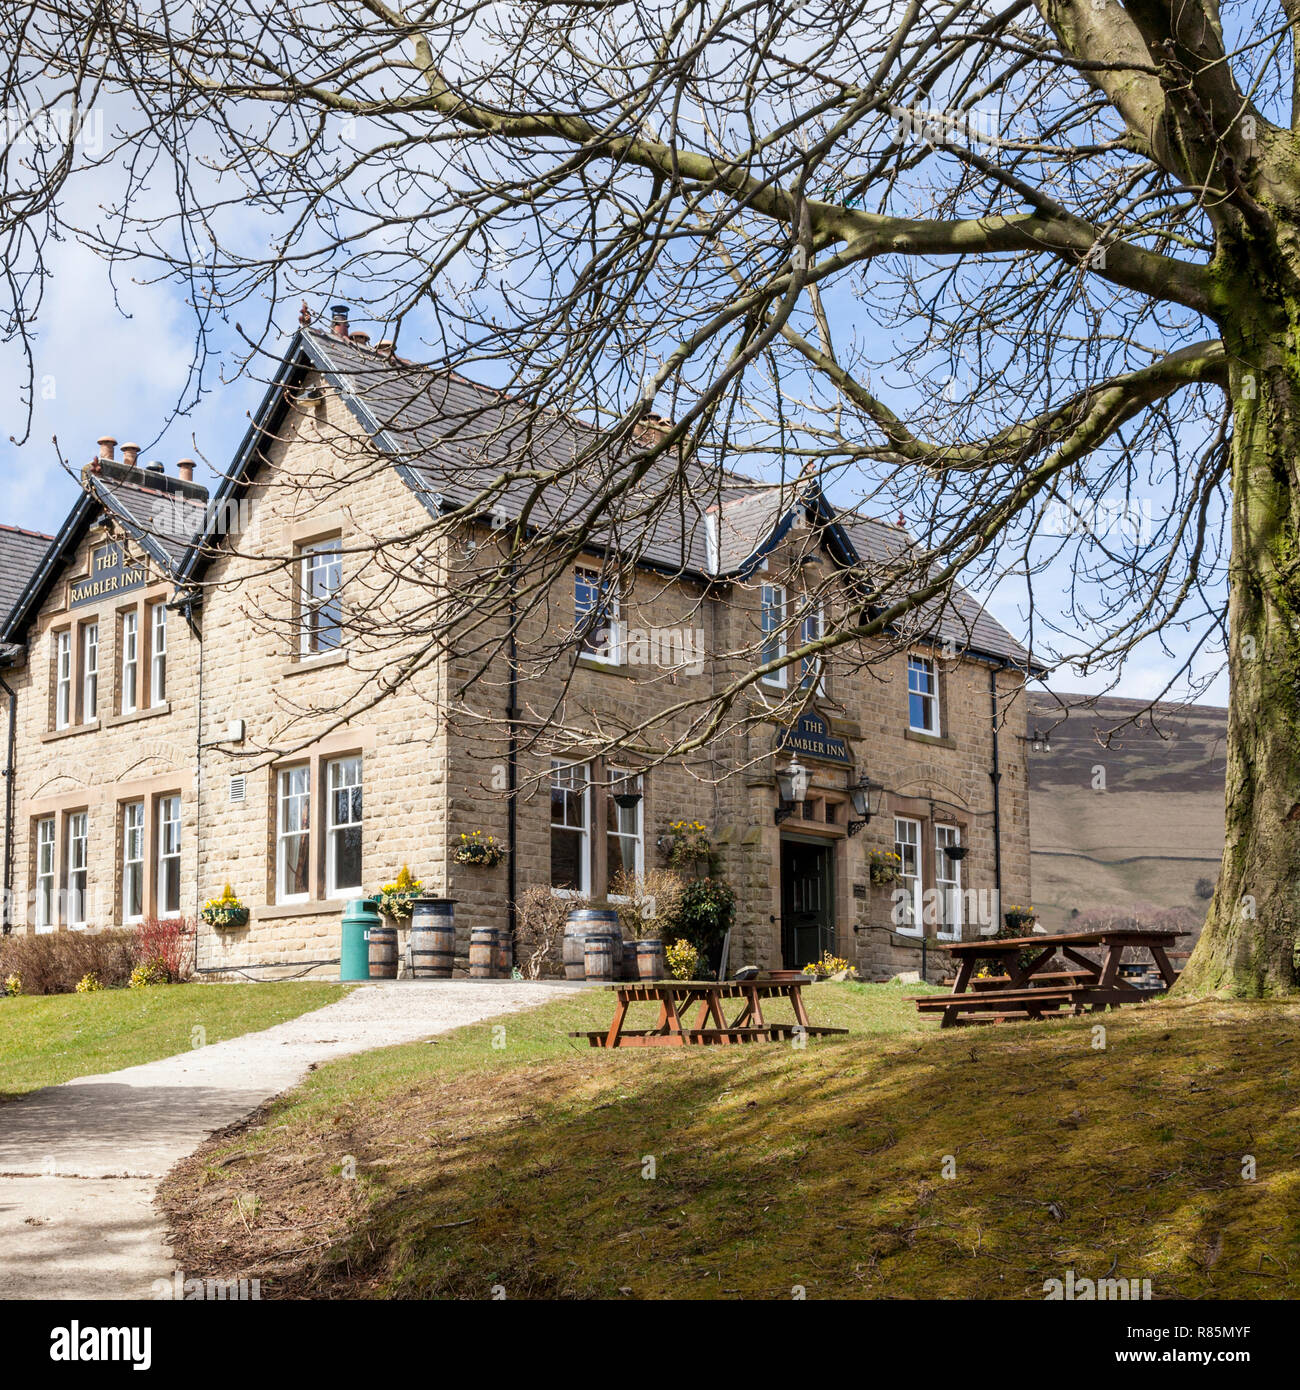 A countryside pub. The Rambler Inn at Edale in Derbyshire, Peak District, England, UK - Stock Image